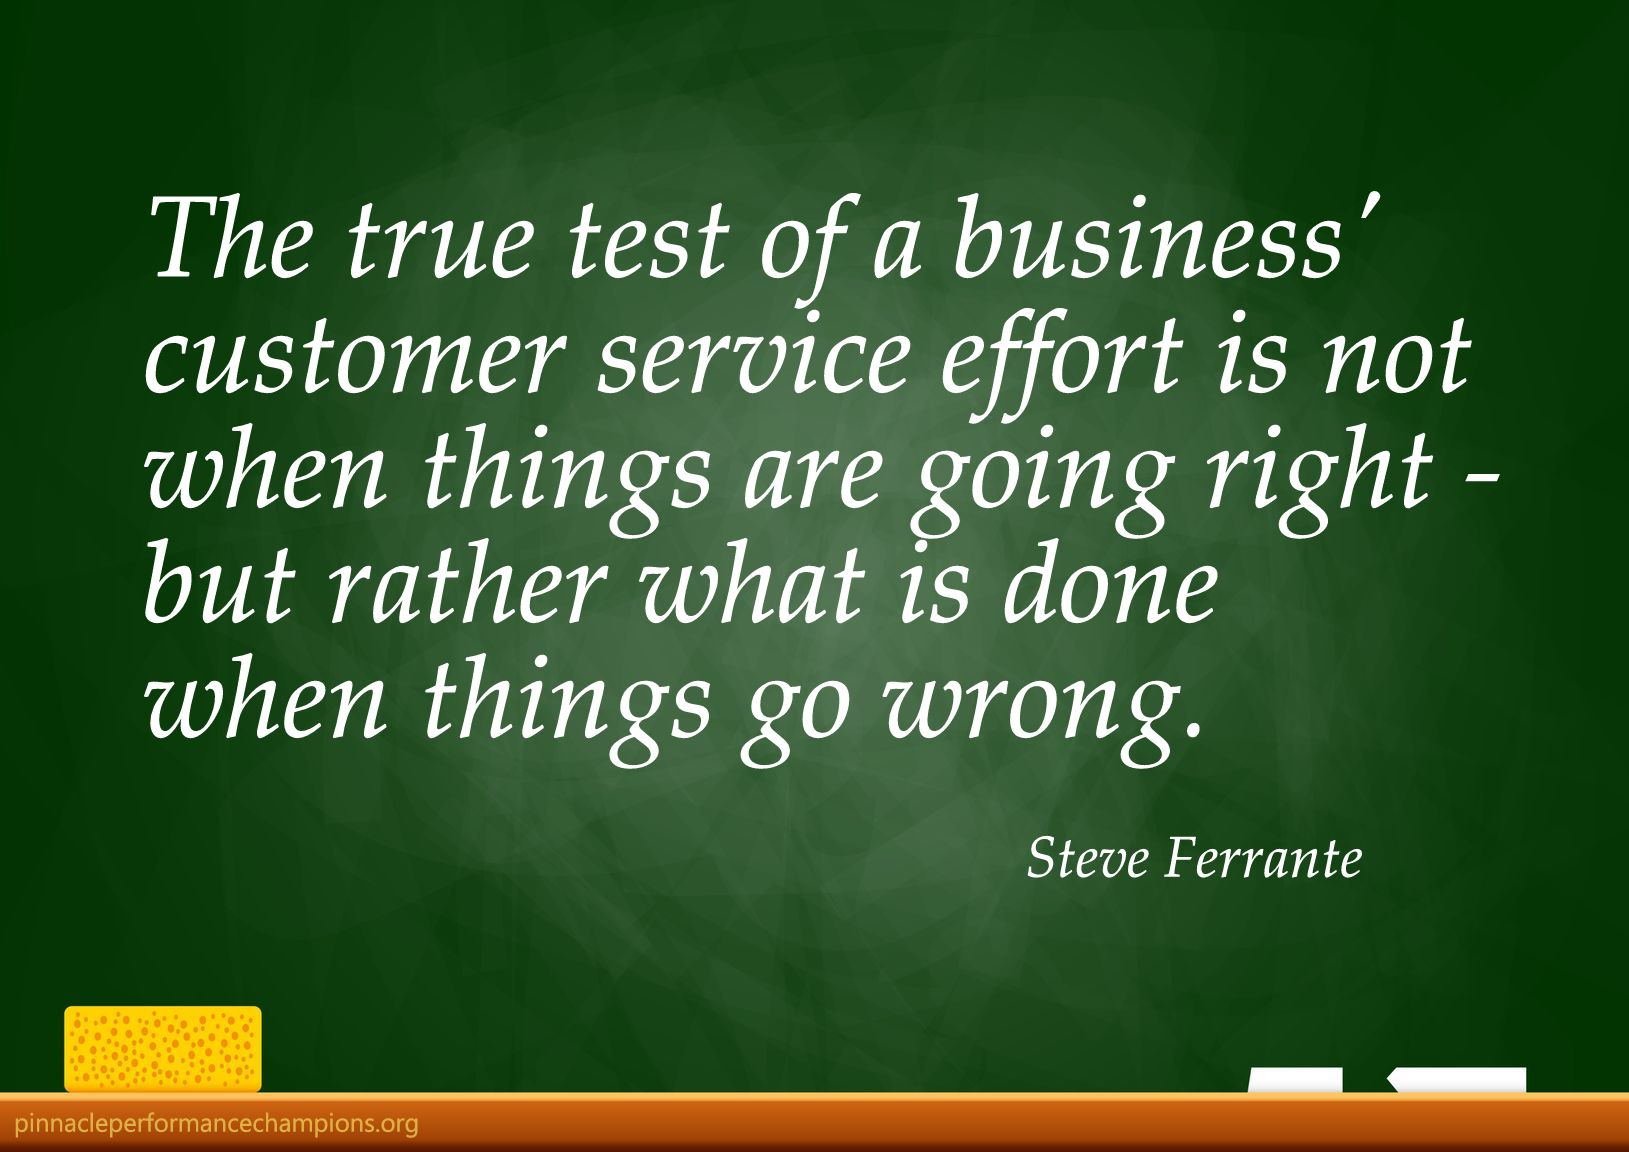 Funny Customer Service Quotes Funny Customer Service Quotes Fair Funny Customer Service Quotes